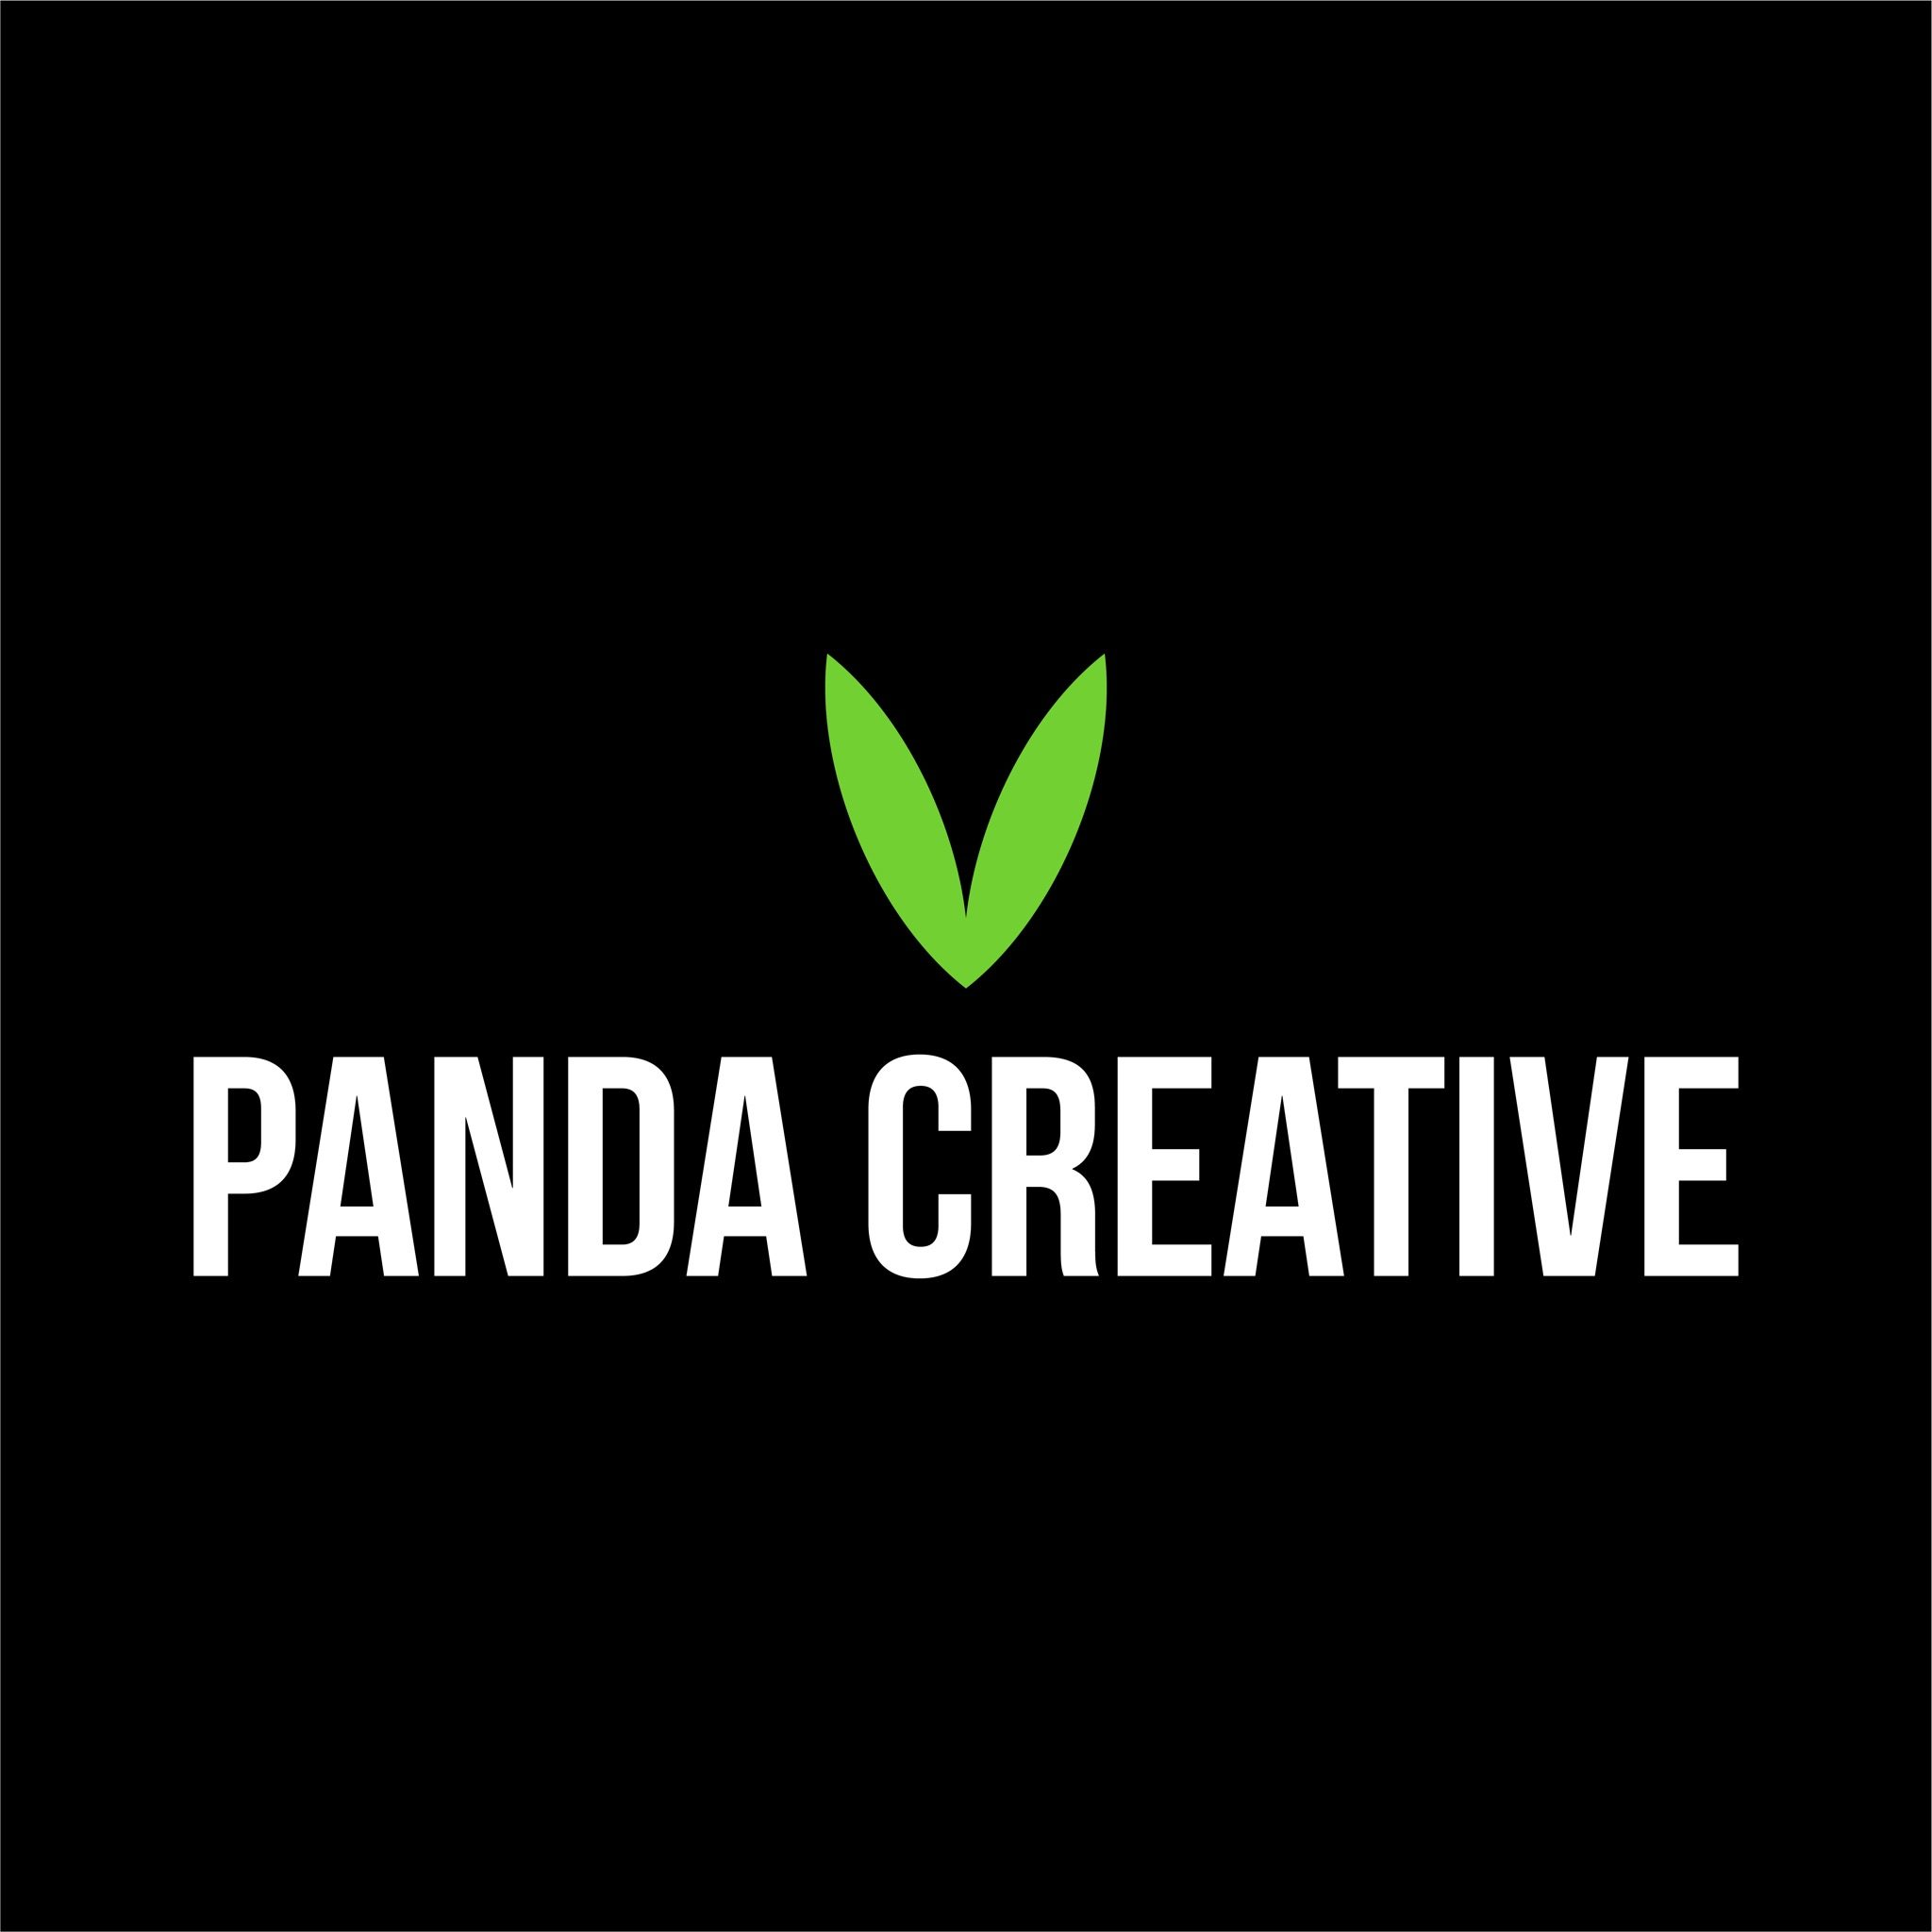 Panda Creative | Graphic Design & Print Studio